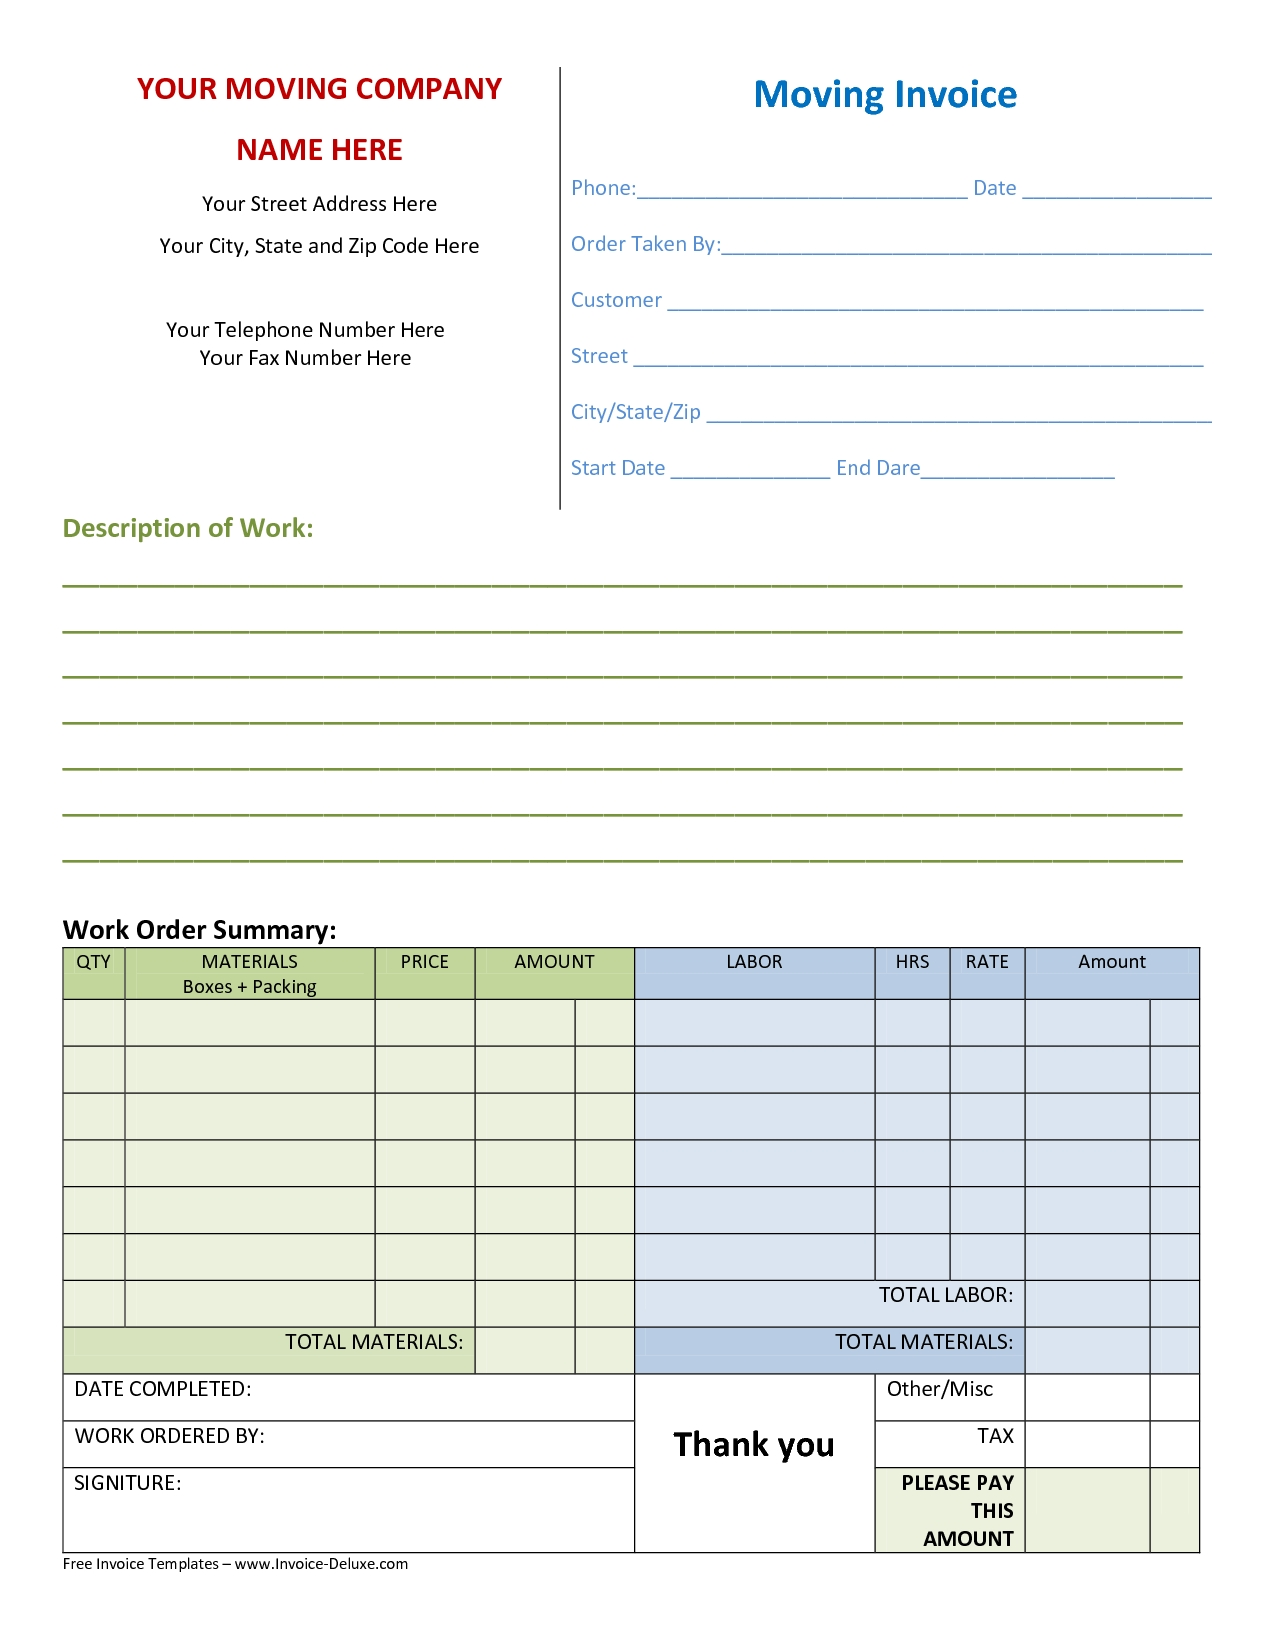 company invoice template your virtual gateway to a secure and company invoice sample